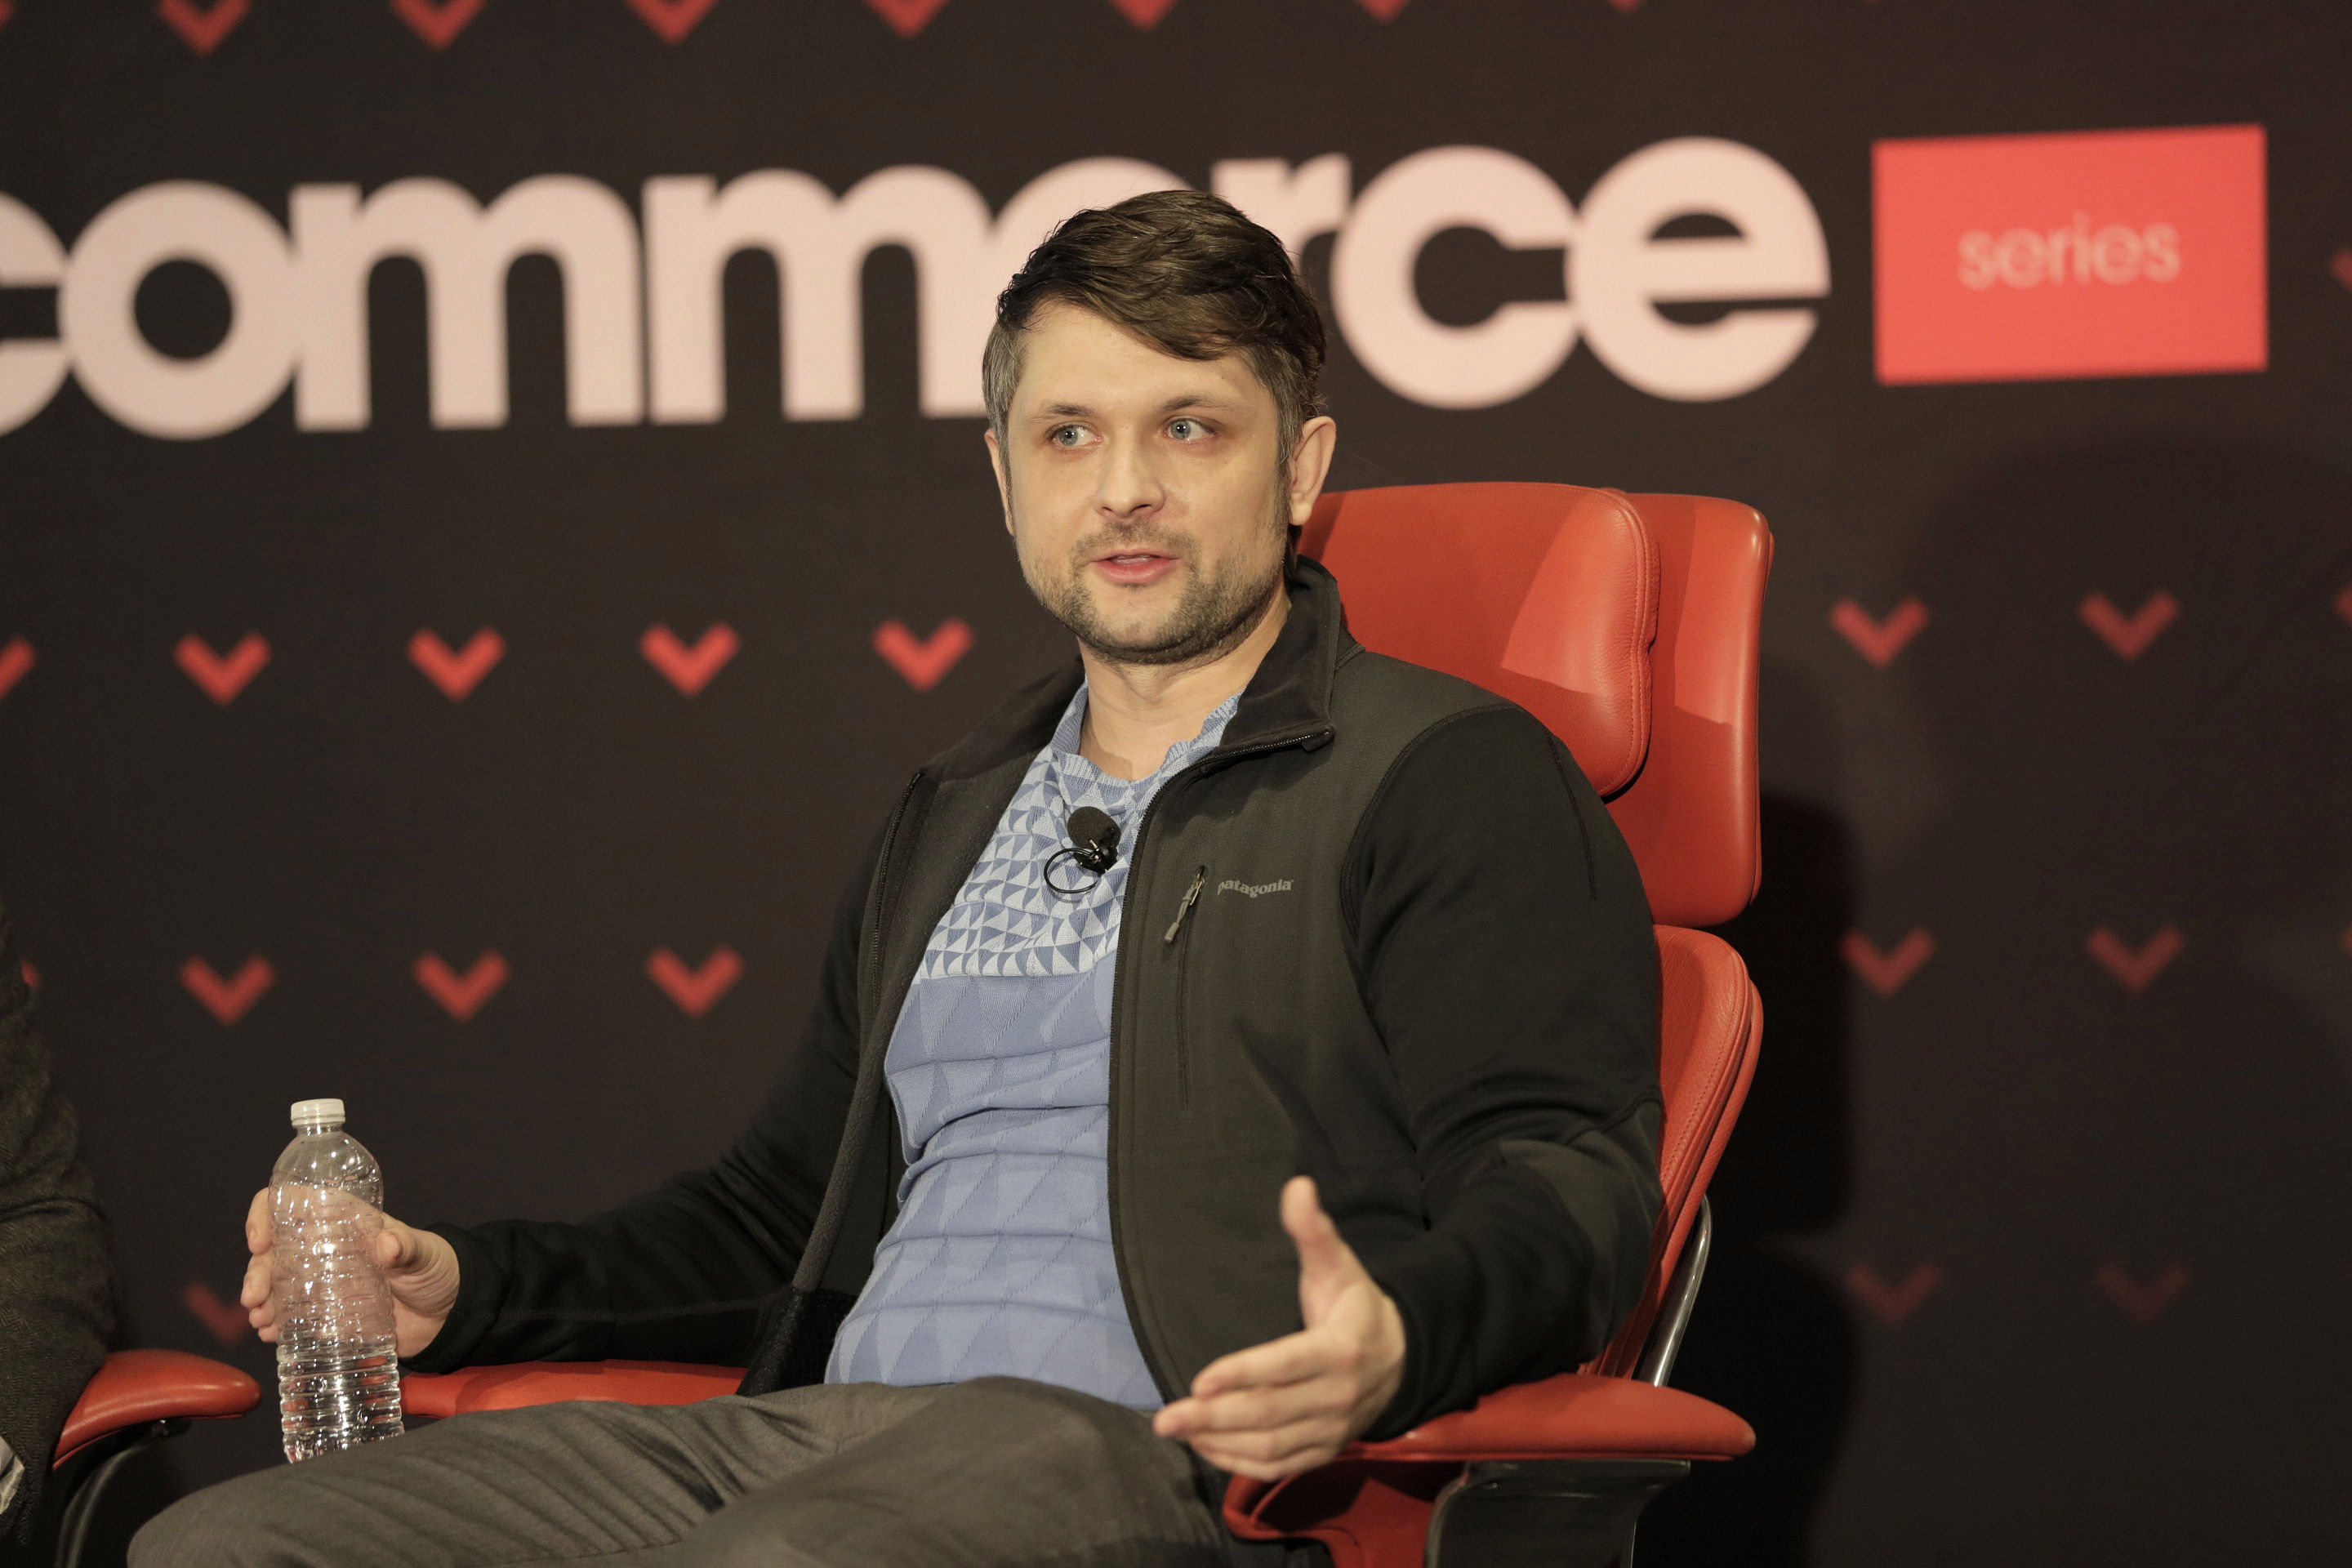 Wish CEO Peter Szulczewski onstage at a 2016 Code Commerce event in San Francisco